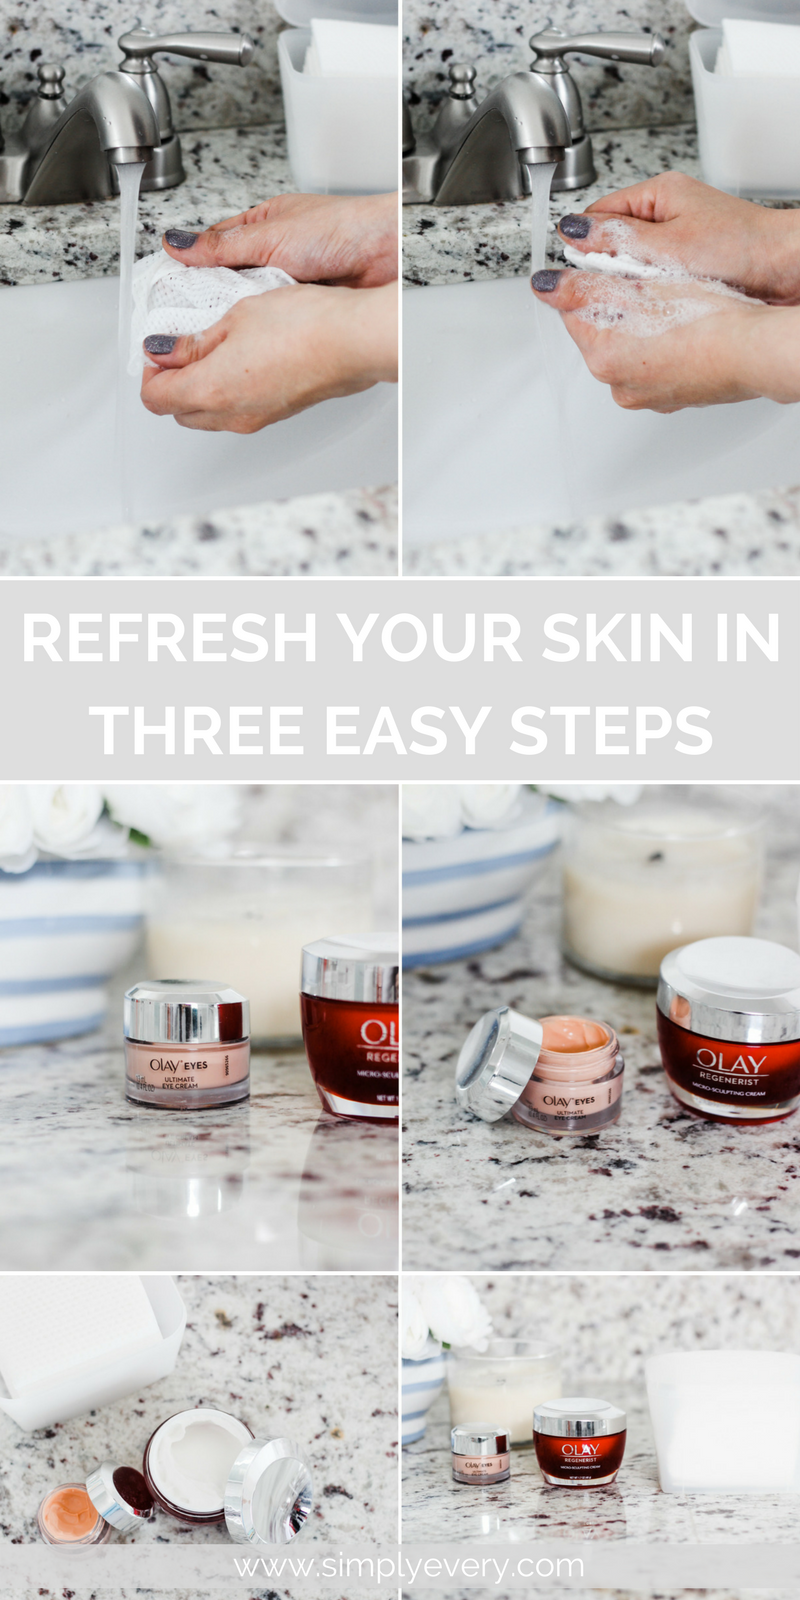 Refresh Your Skin in Three Easy Steps